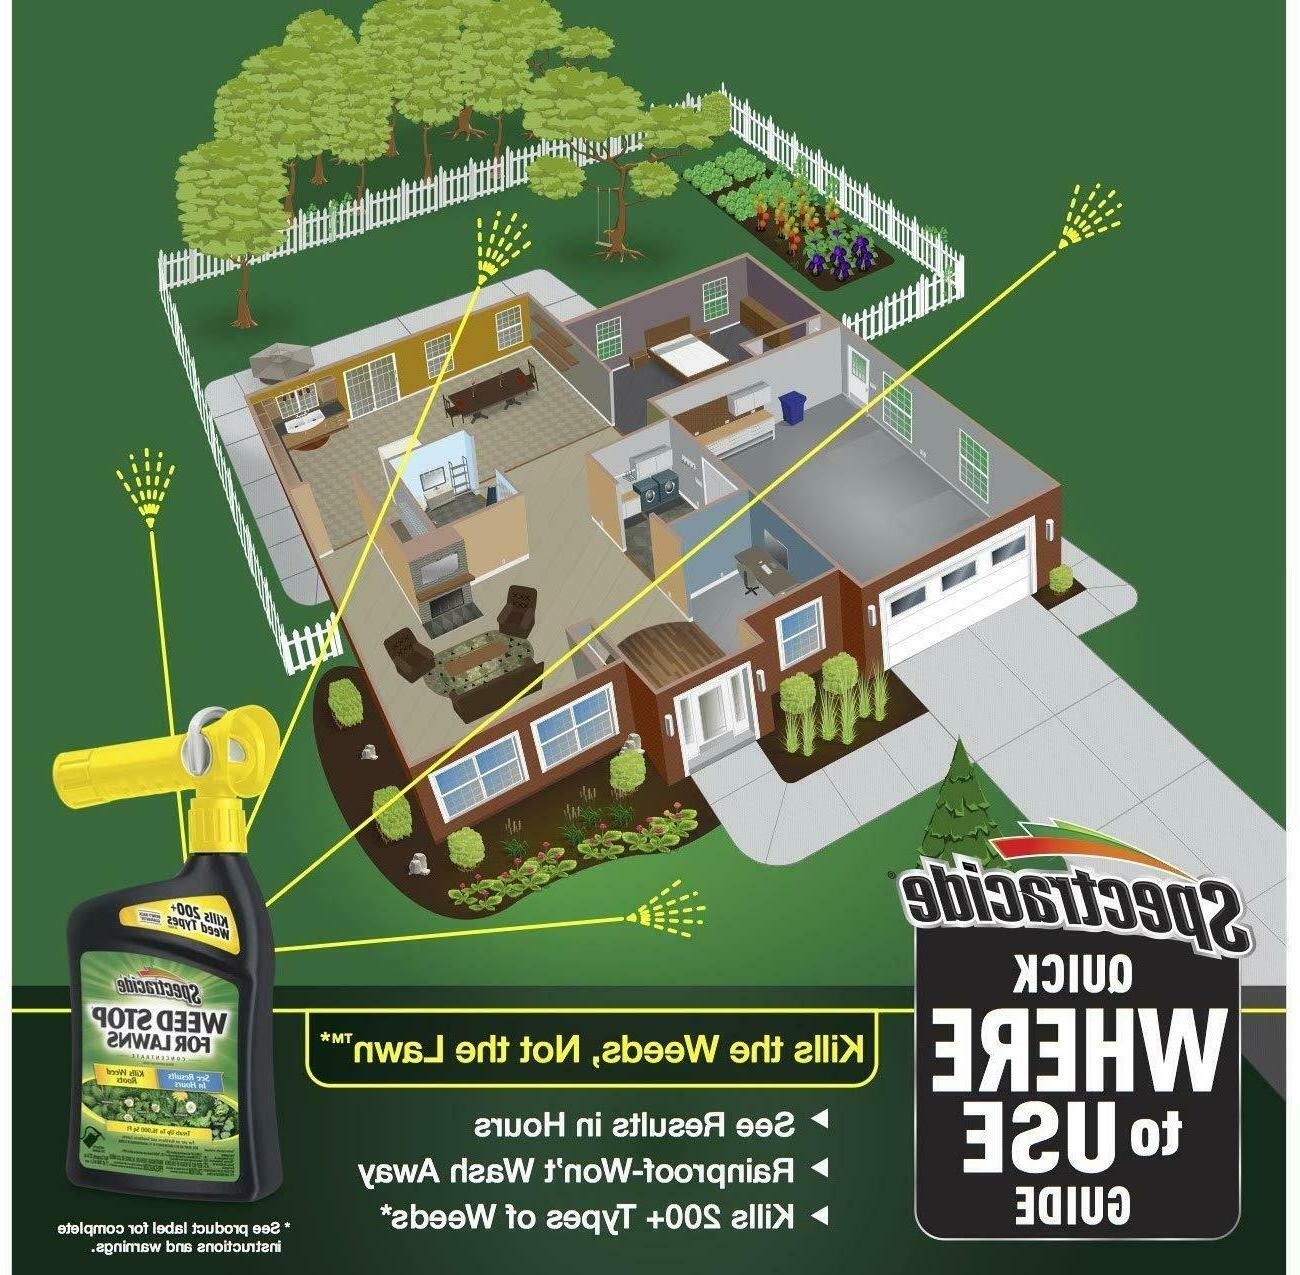 Spectracide Lawns Concentrate, Ready-to-Spray, 32-Ounce